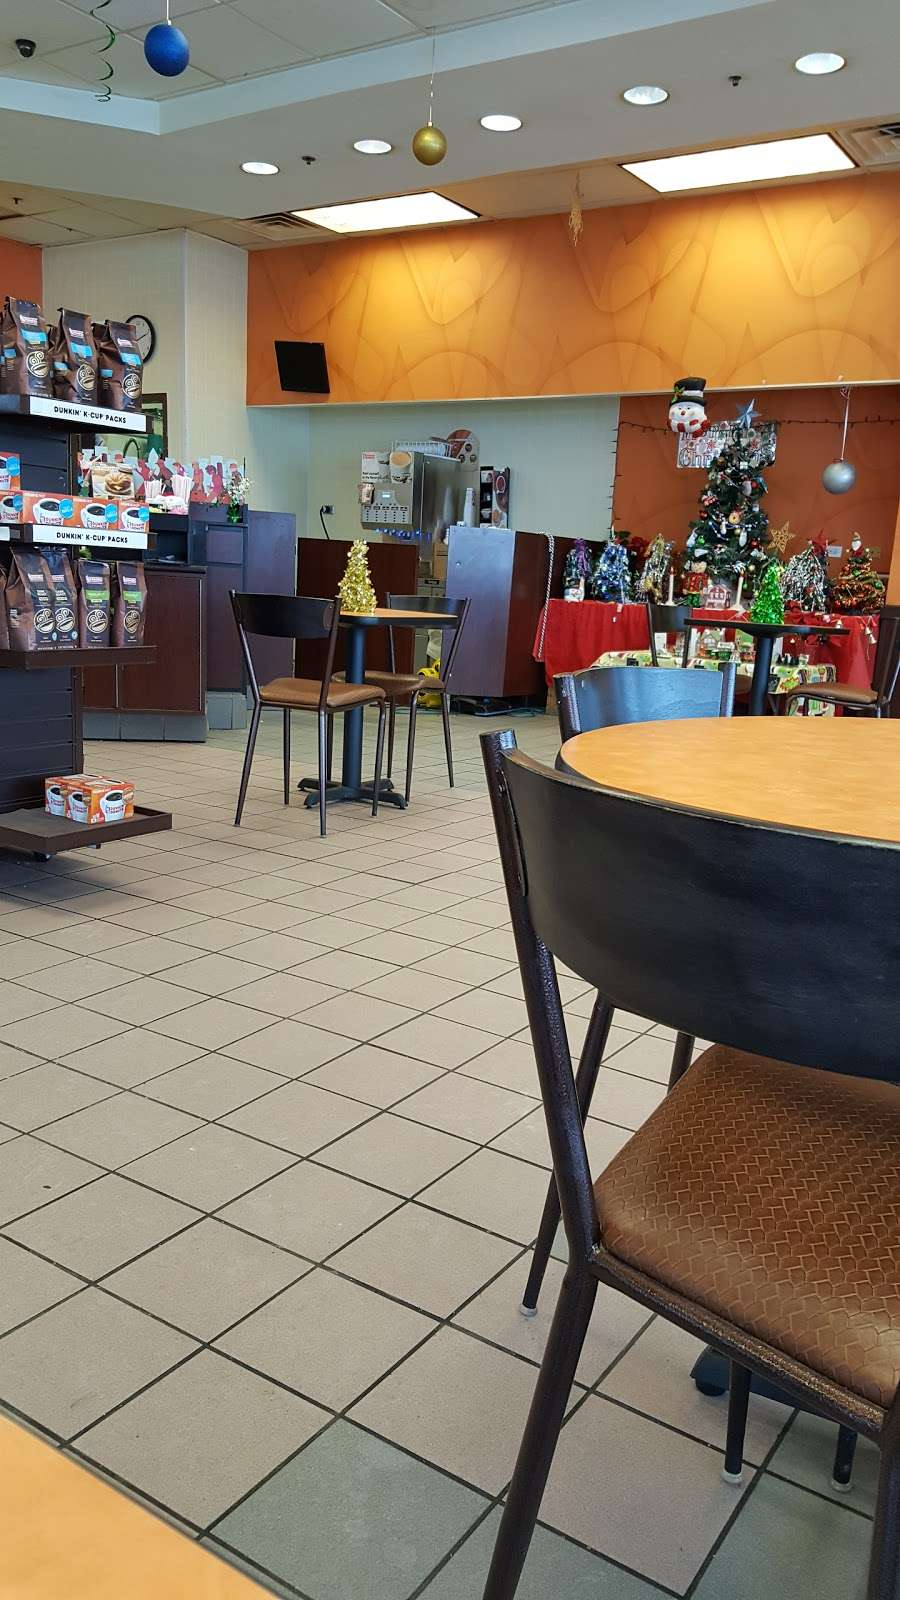 Dunkin Donuts - cafe  | Photo 4 of 10 | Address: 7247 Kingery Hwy, Hinsdale, IL 60521, USA | Phone: (630) 323-5205